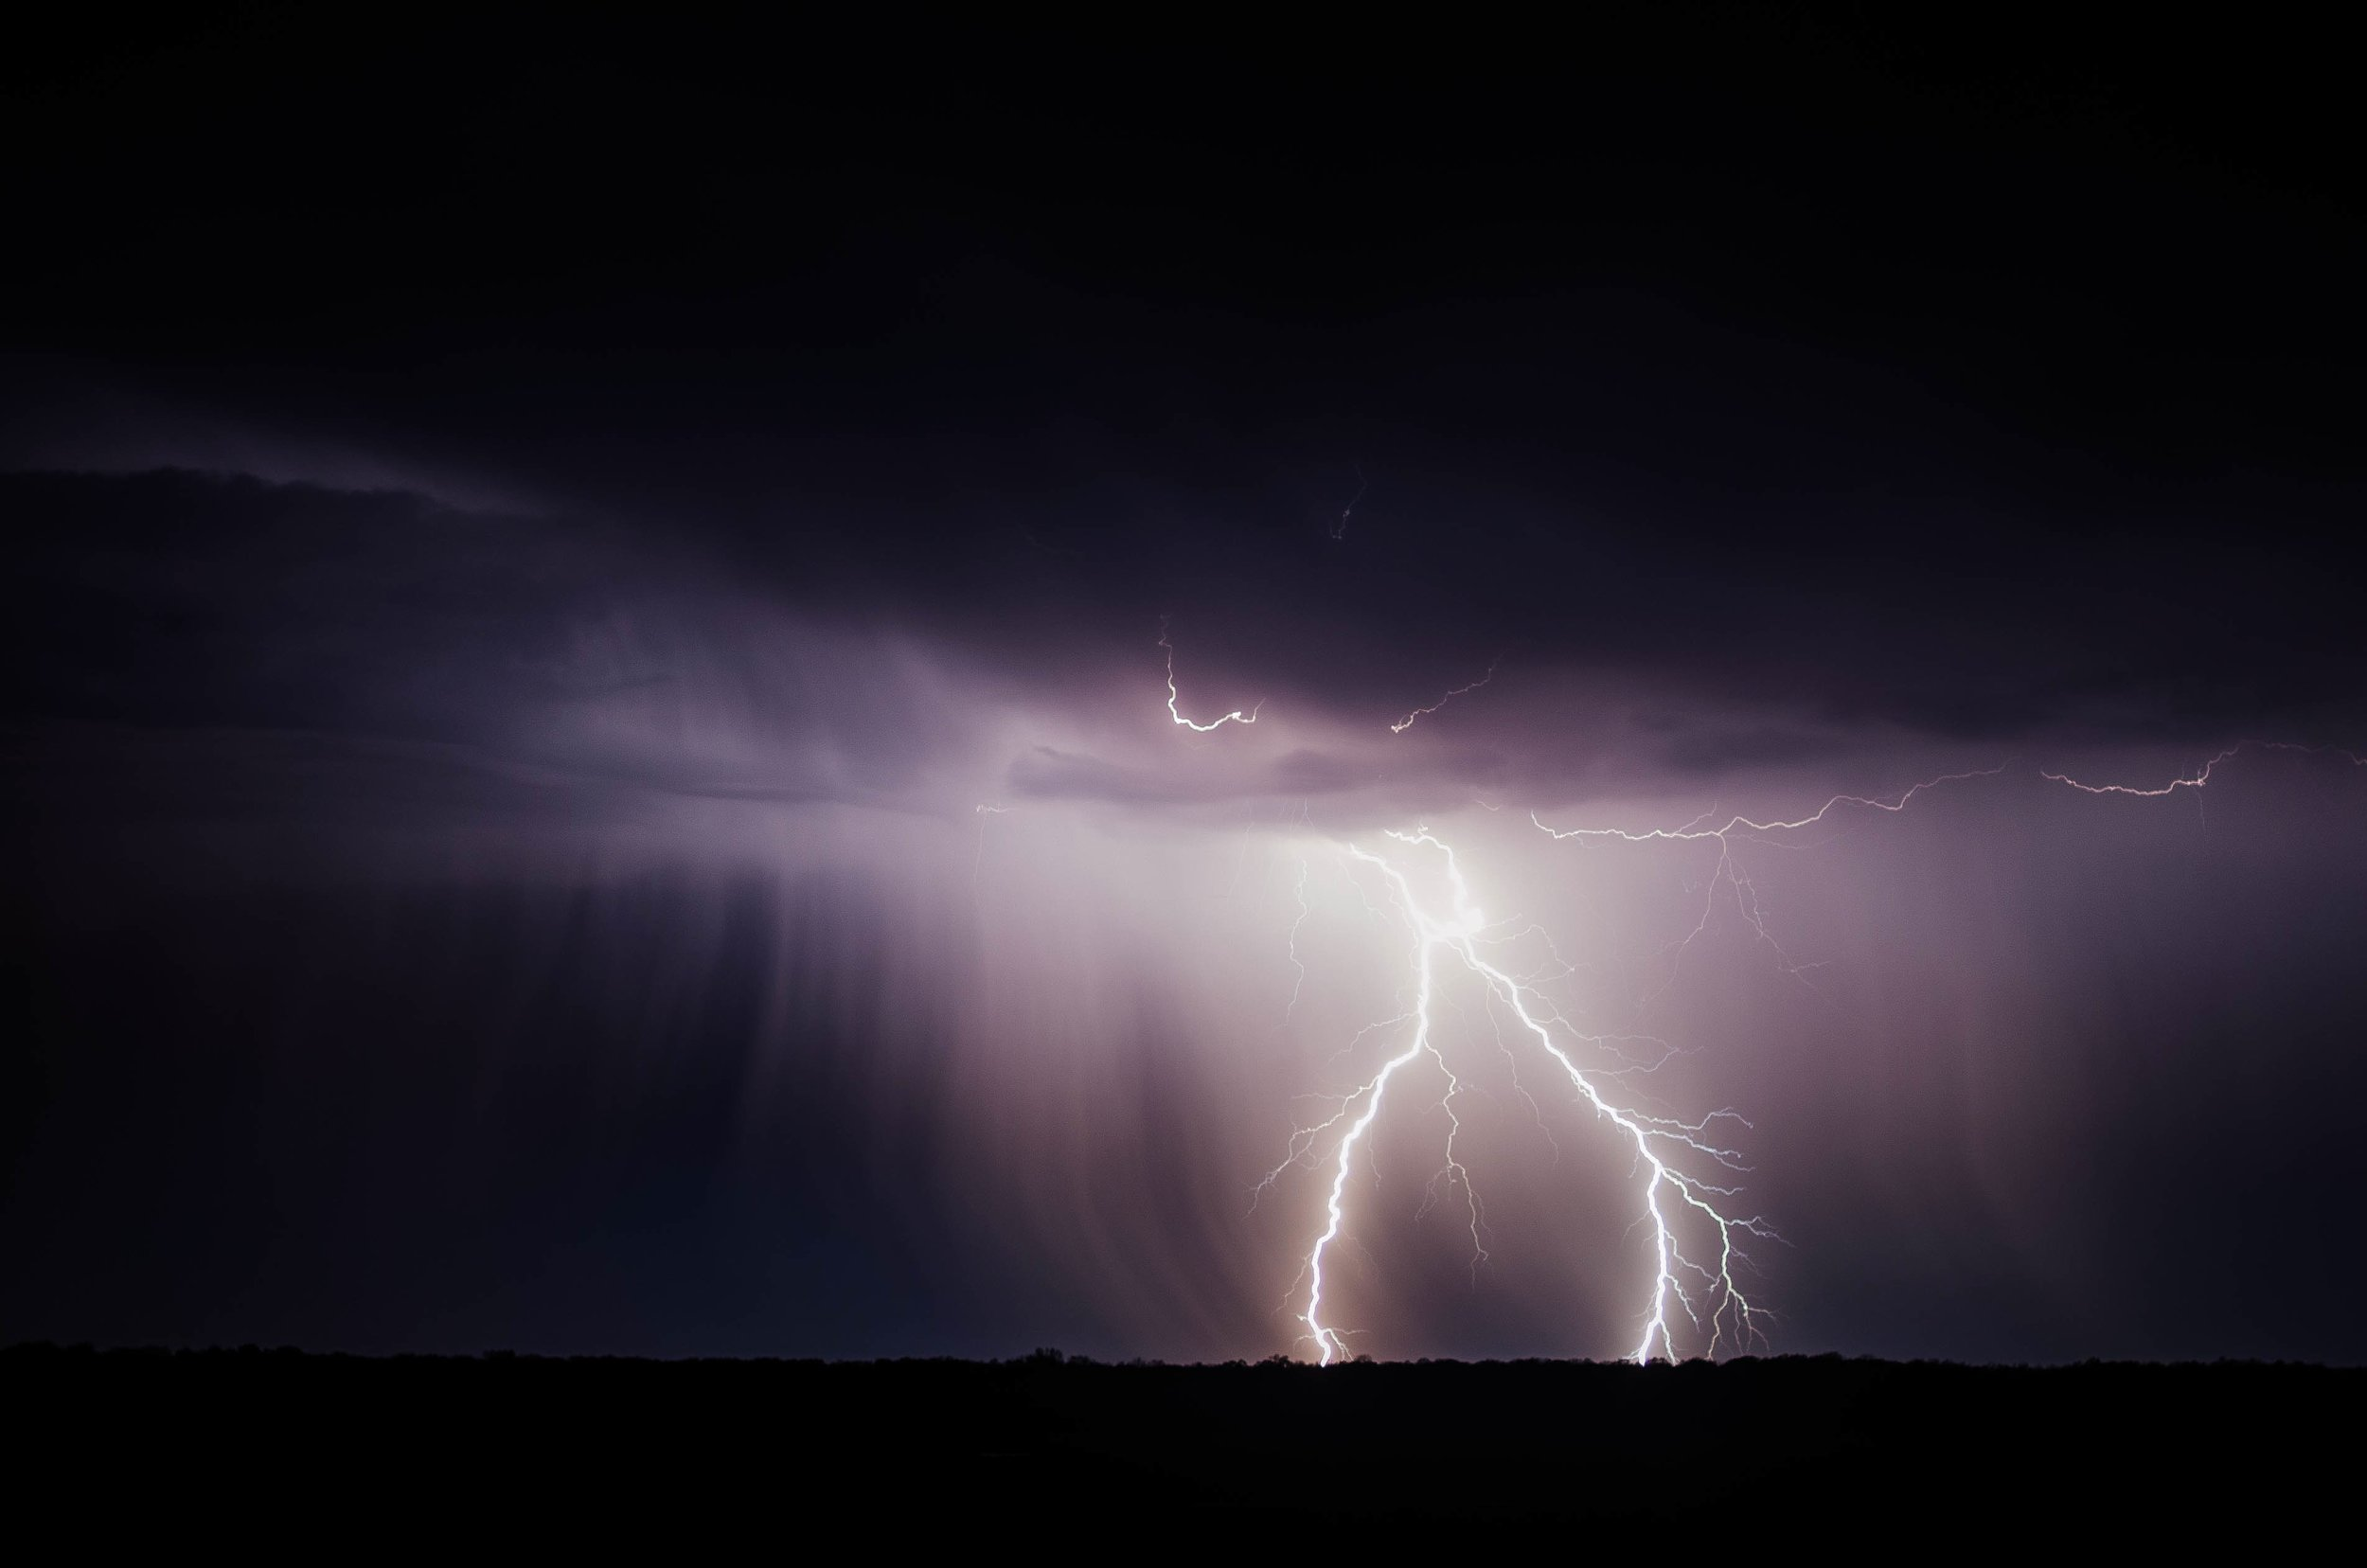 Fire & Lightning Insurance - We offer coverage against loss by fire or lightning to homes, outbuildings, farm equipment, livestock, home contents, and apartment contents.